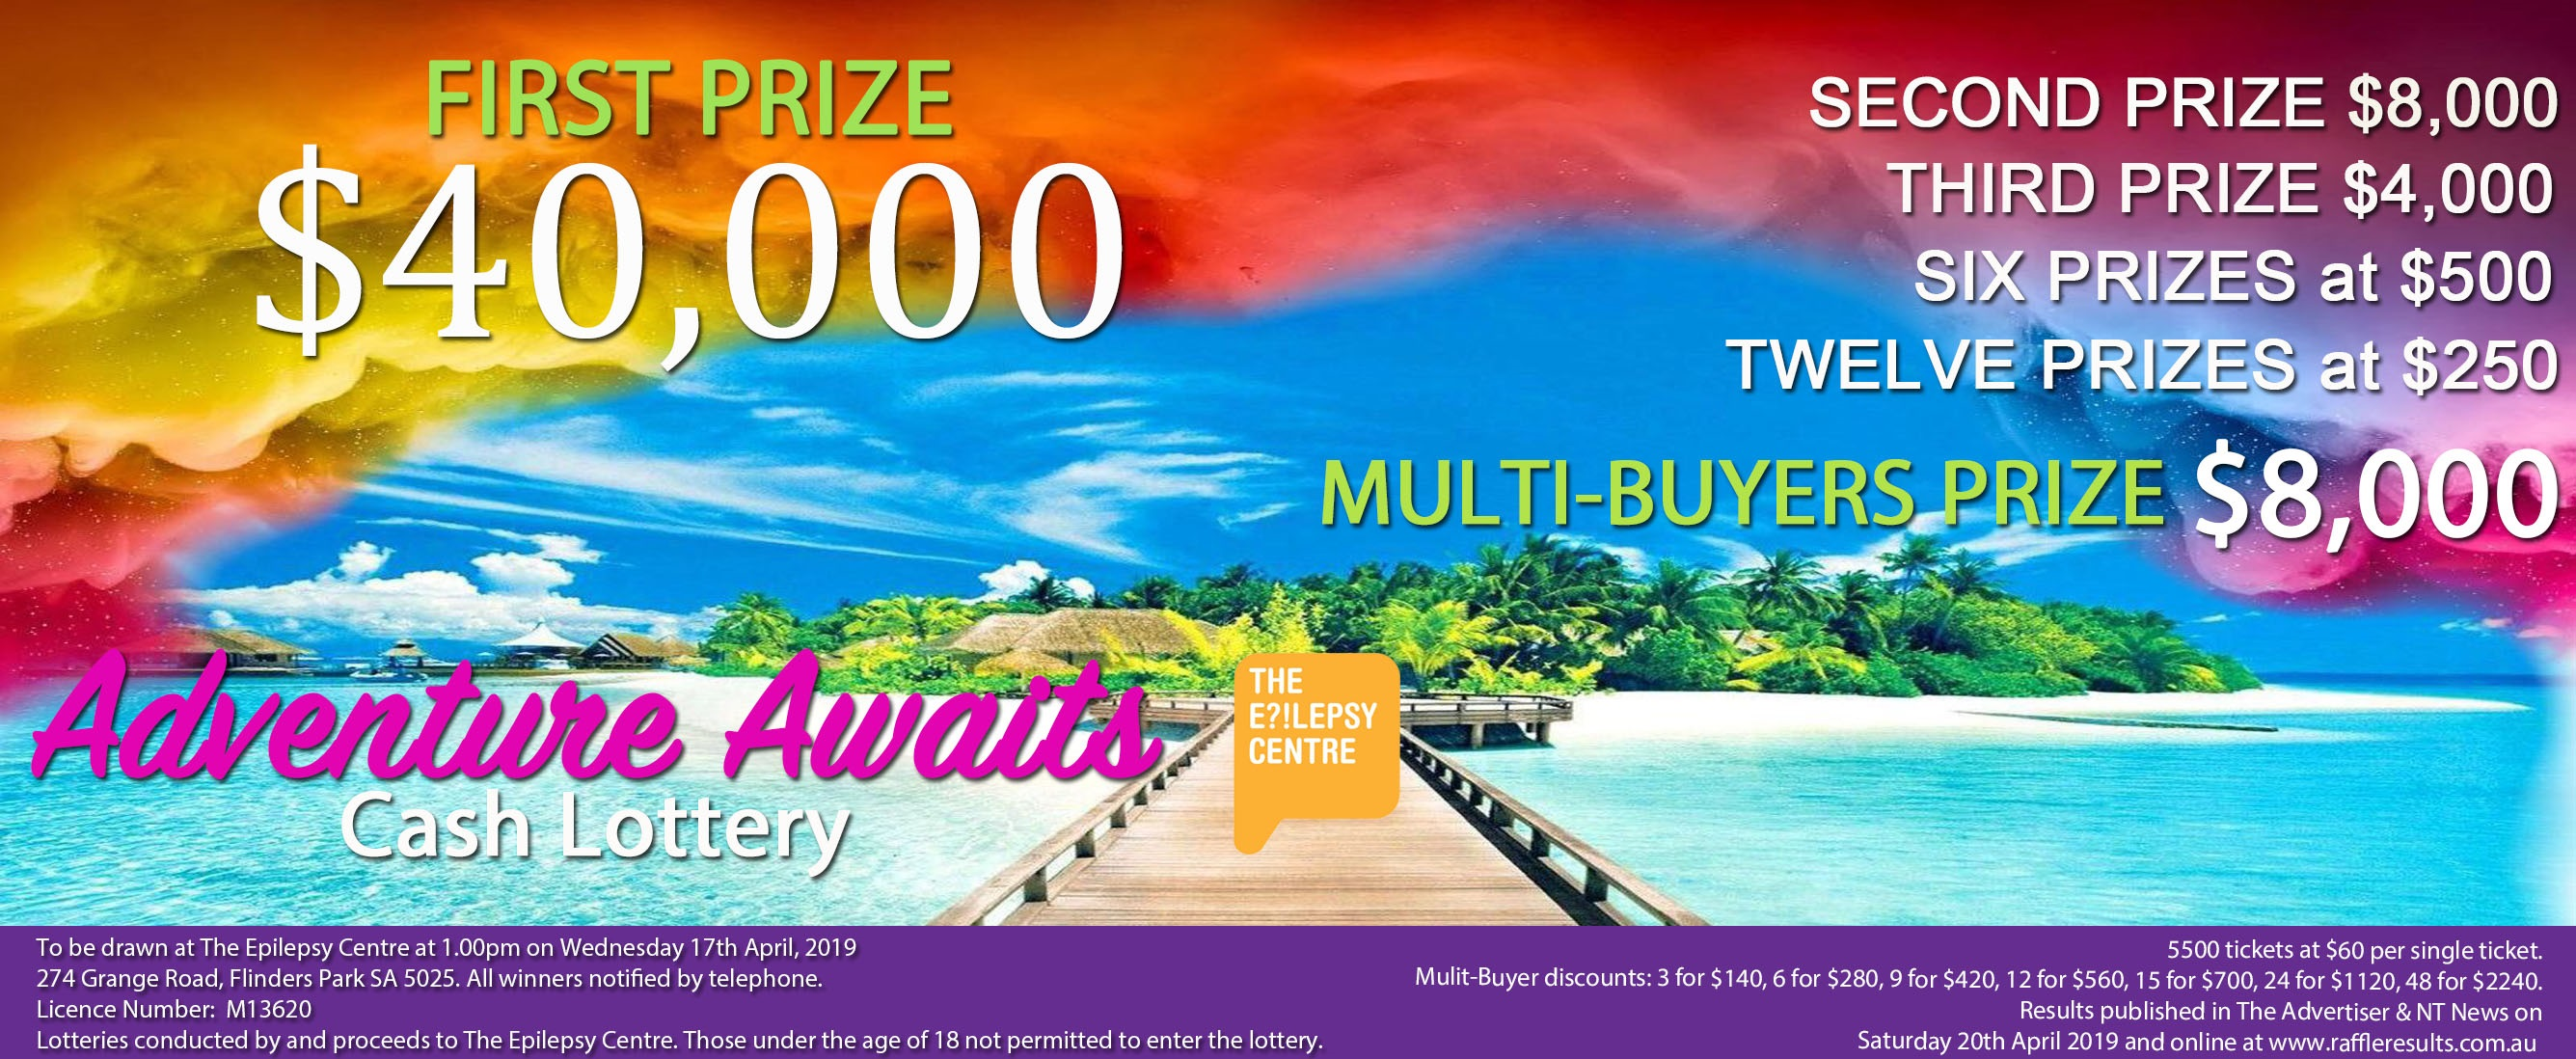 Win 2 X 250 Shopping Sprees At Broadway Shopping Centre: Raffles On Sale